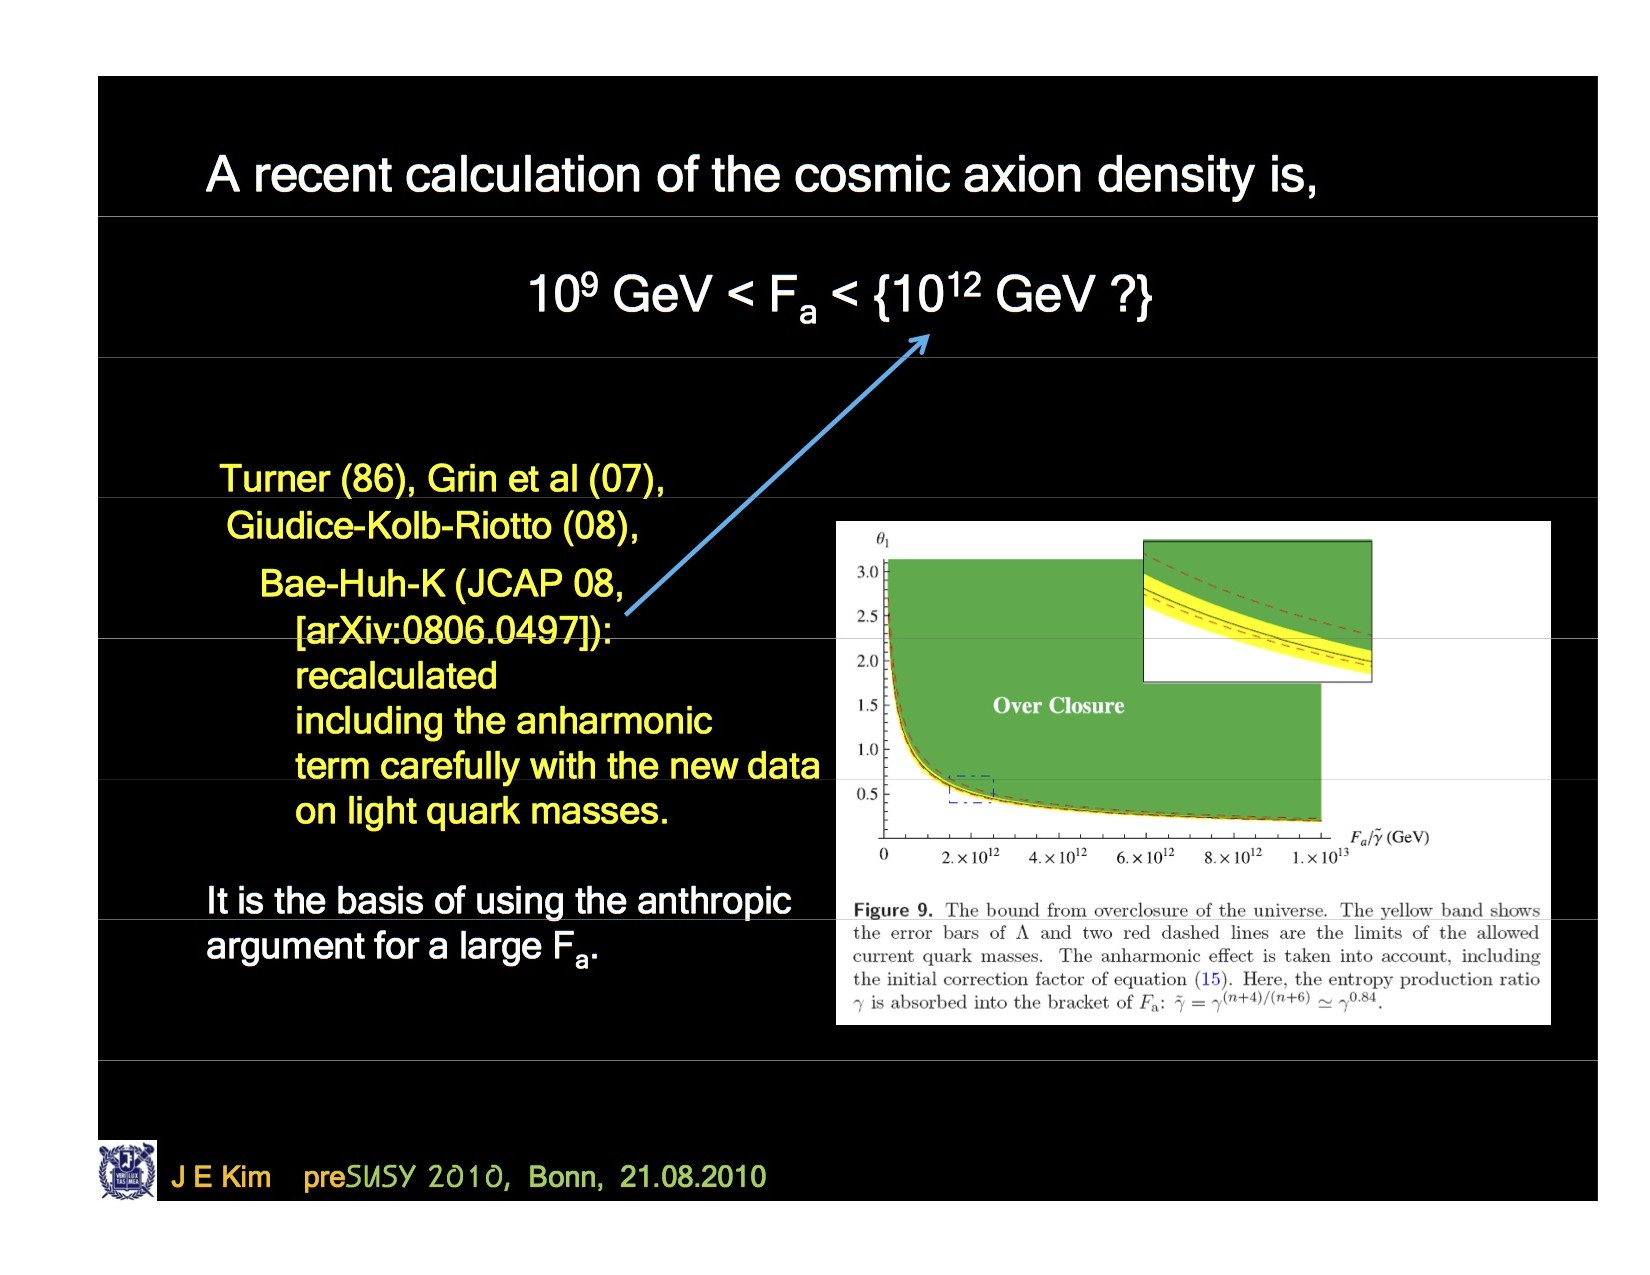 Mass of the Universe with Axions, no axions. Here is a plot from a recent SUSY talk (2010) http://susy10.uni-bonn.de/data/KimJEpreSUSY.pdf